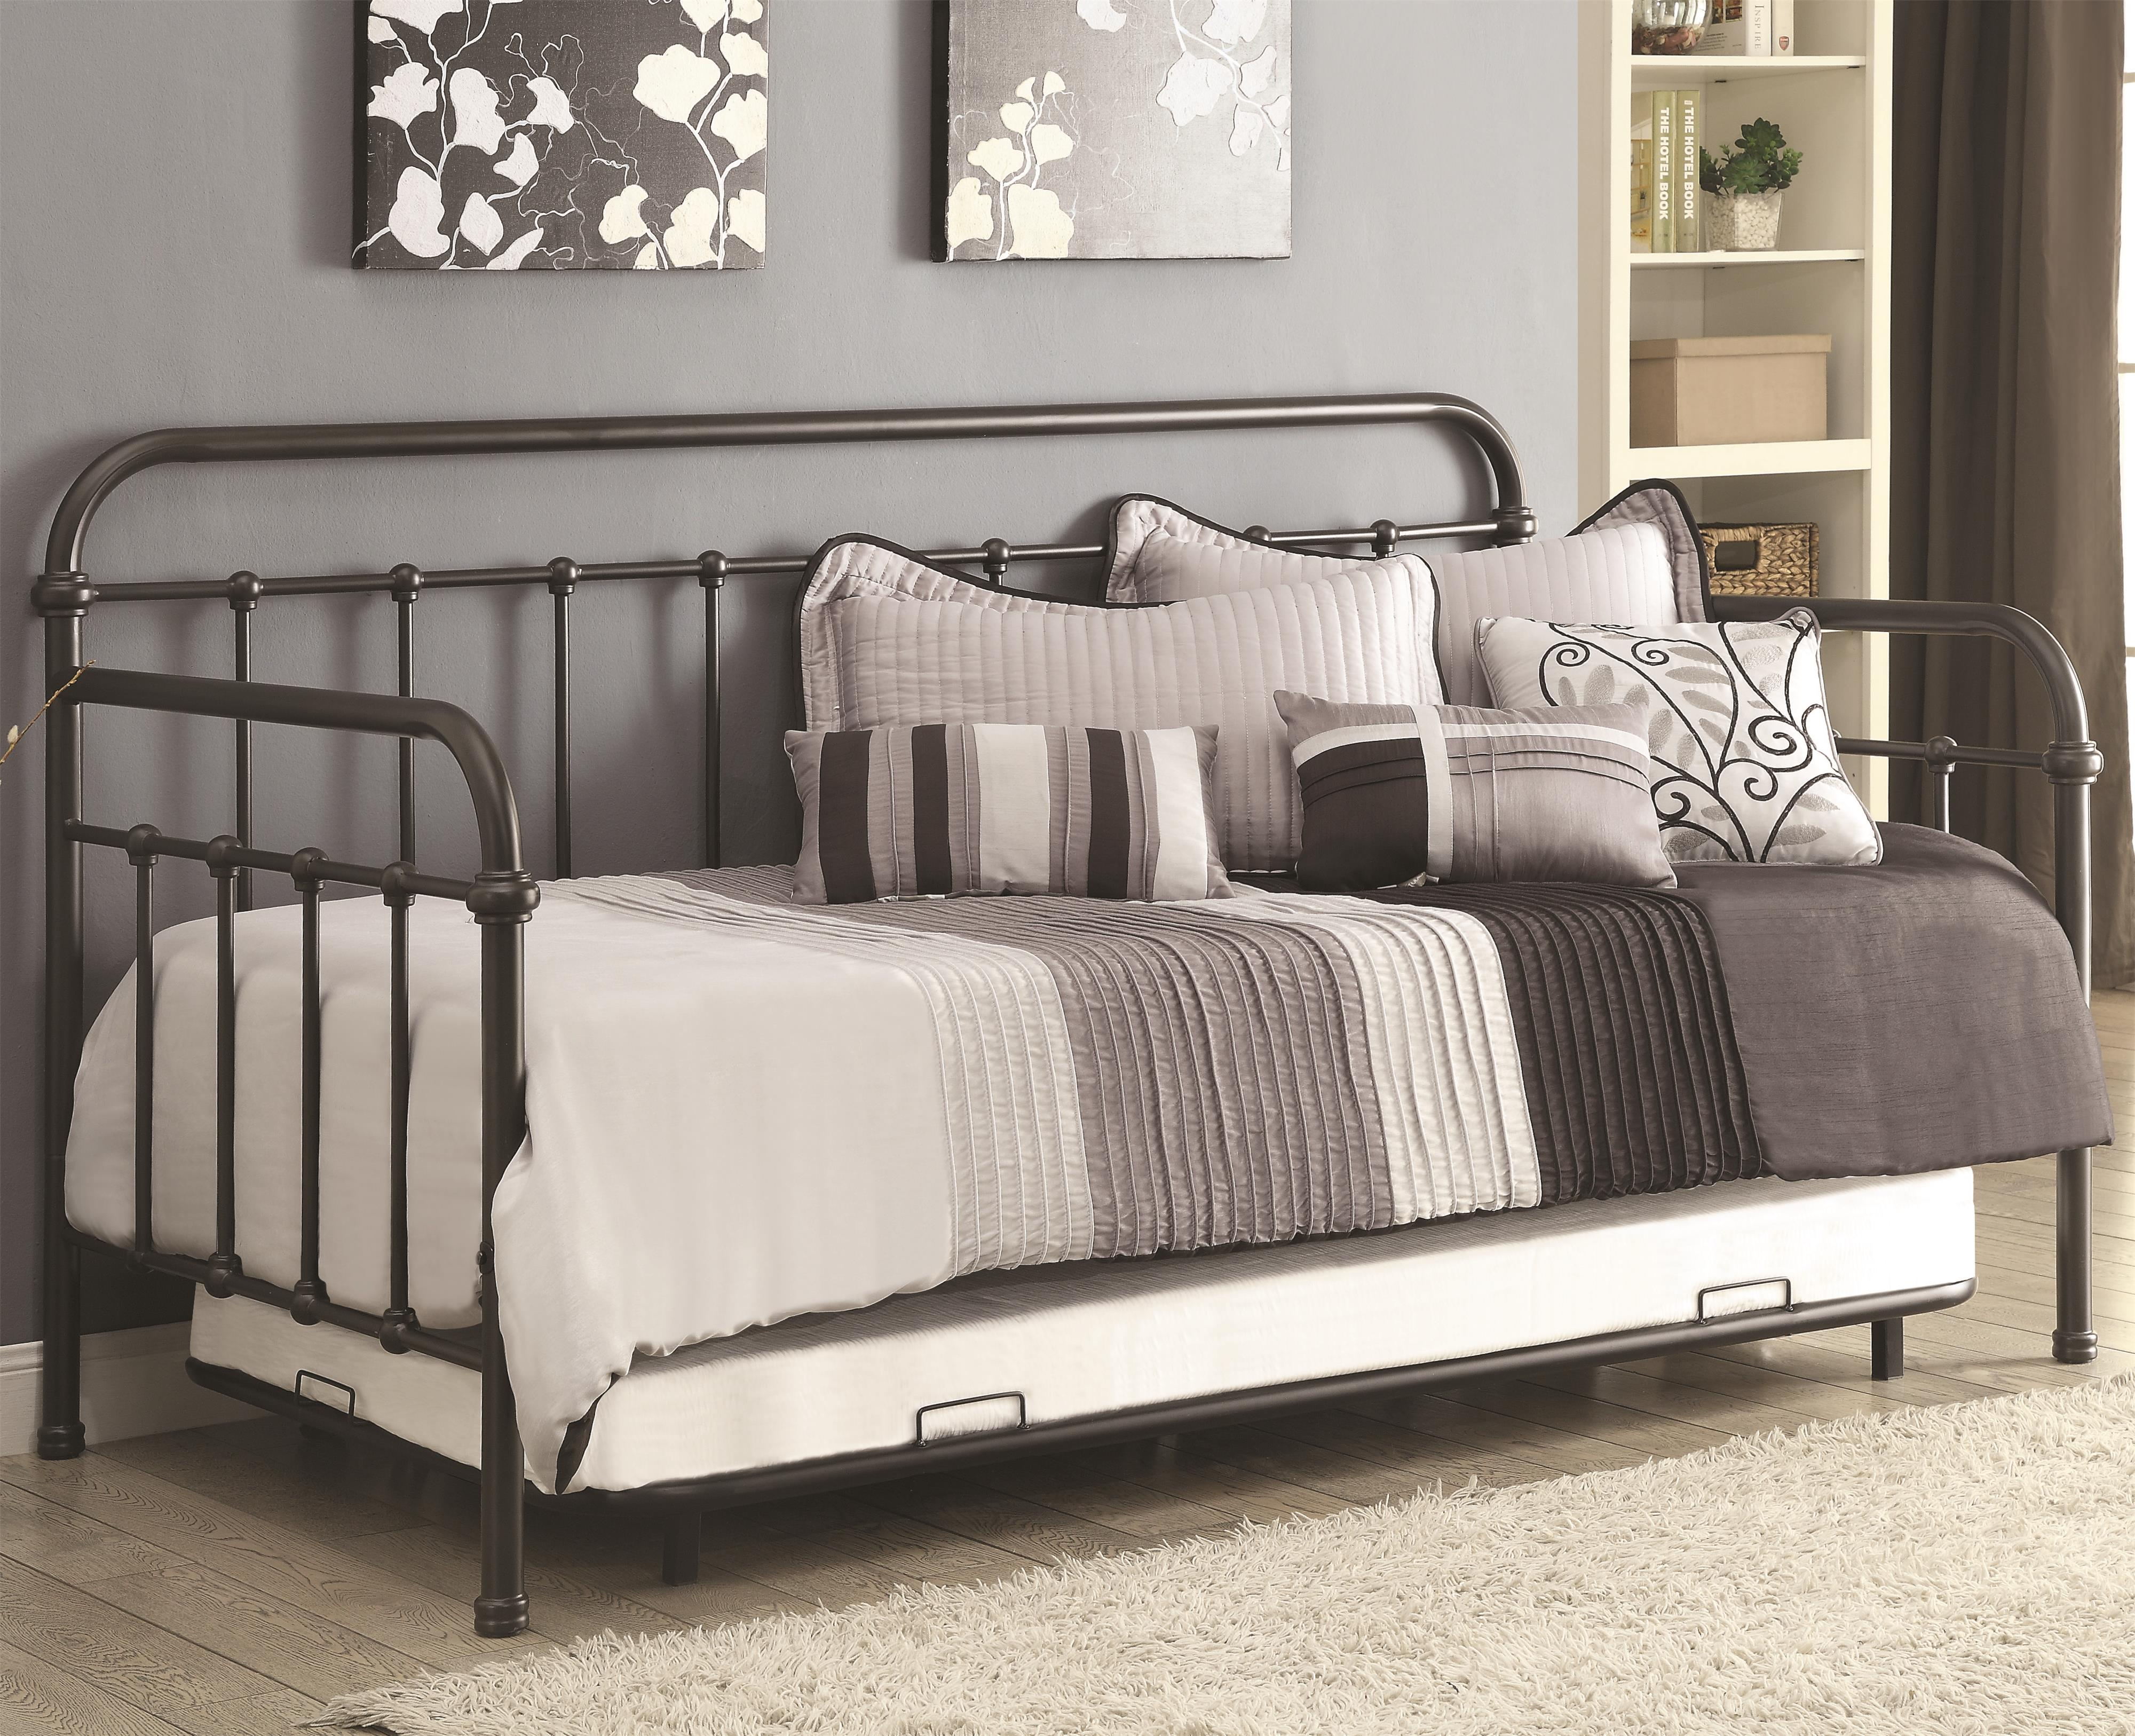 Coaster Daybeds by Coaster Daybed - Item Number: 300398